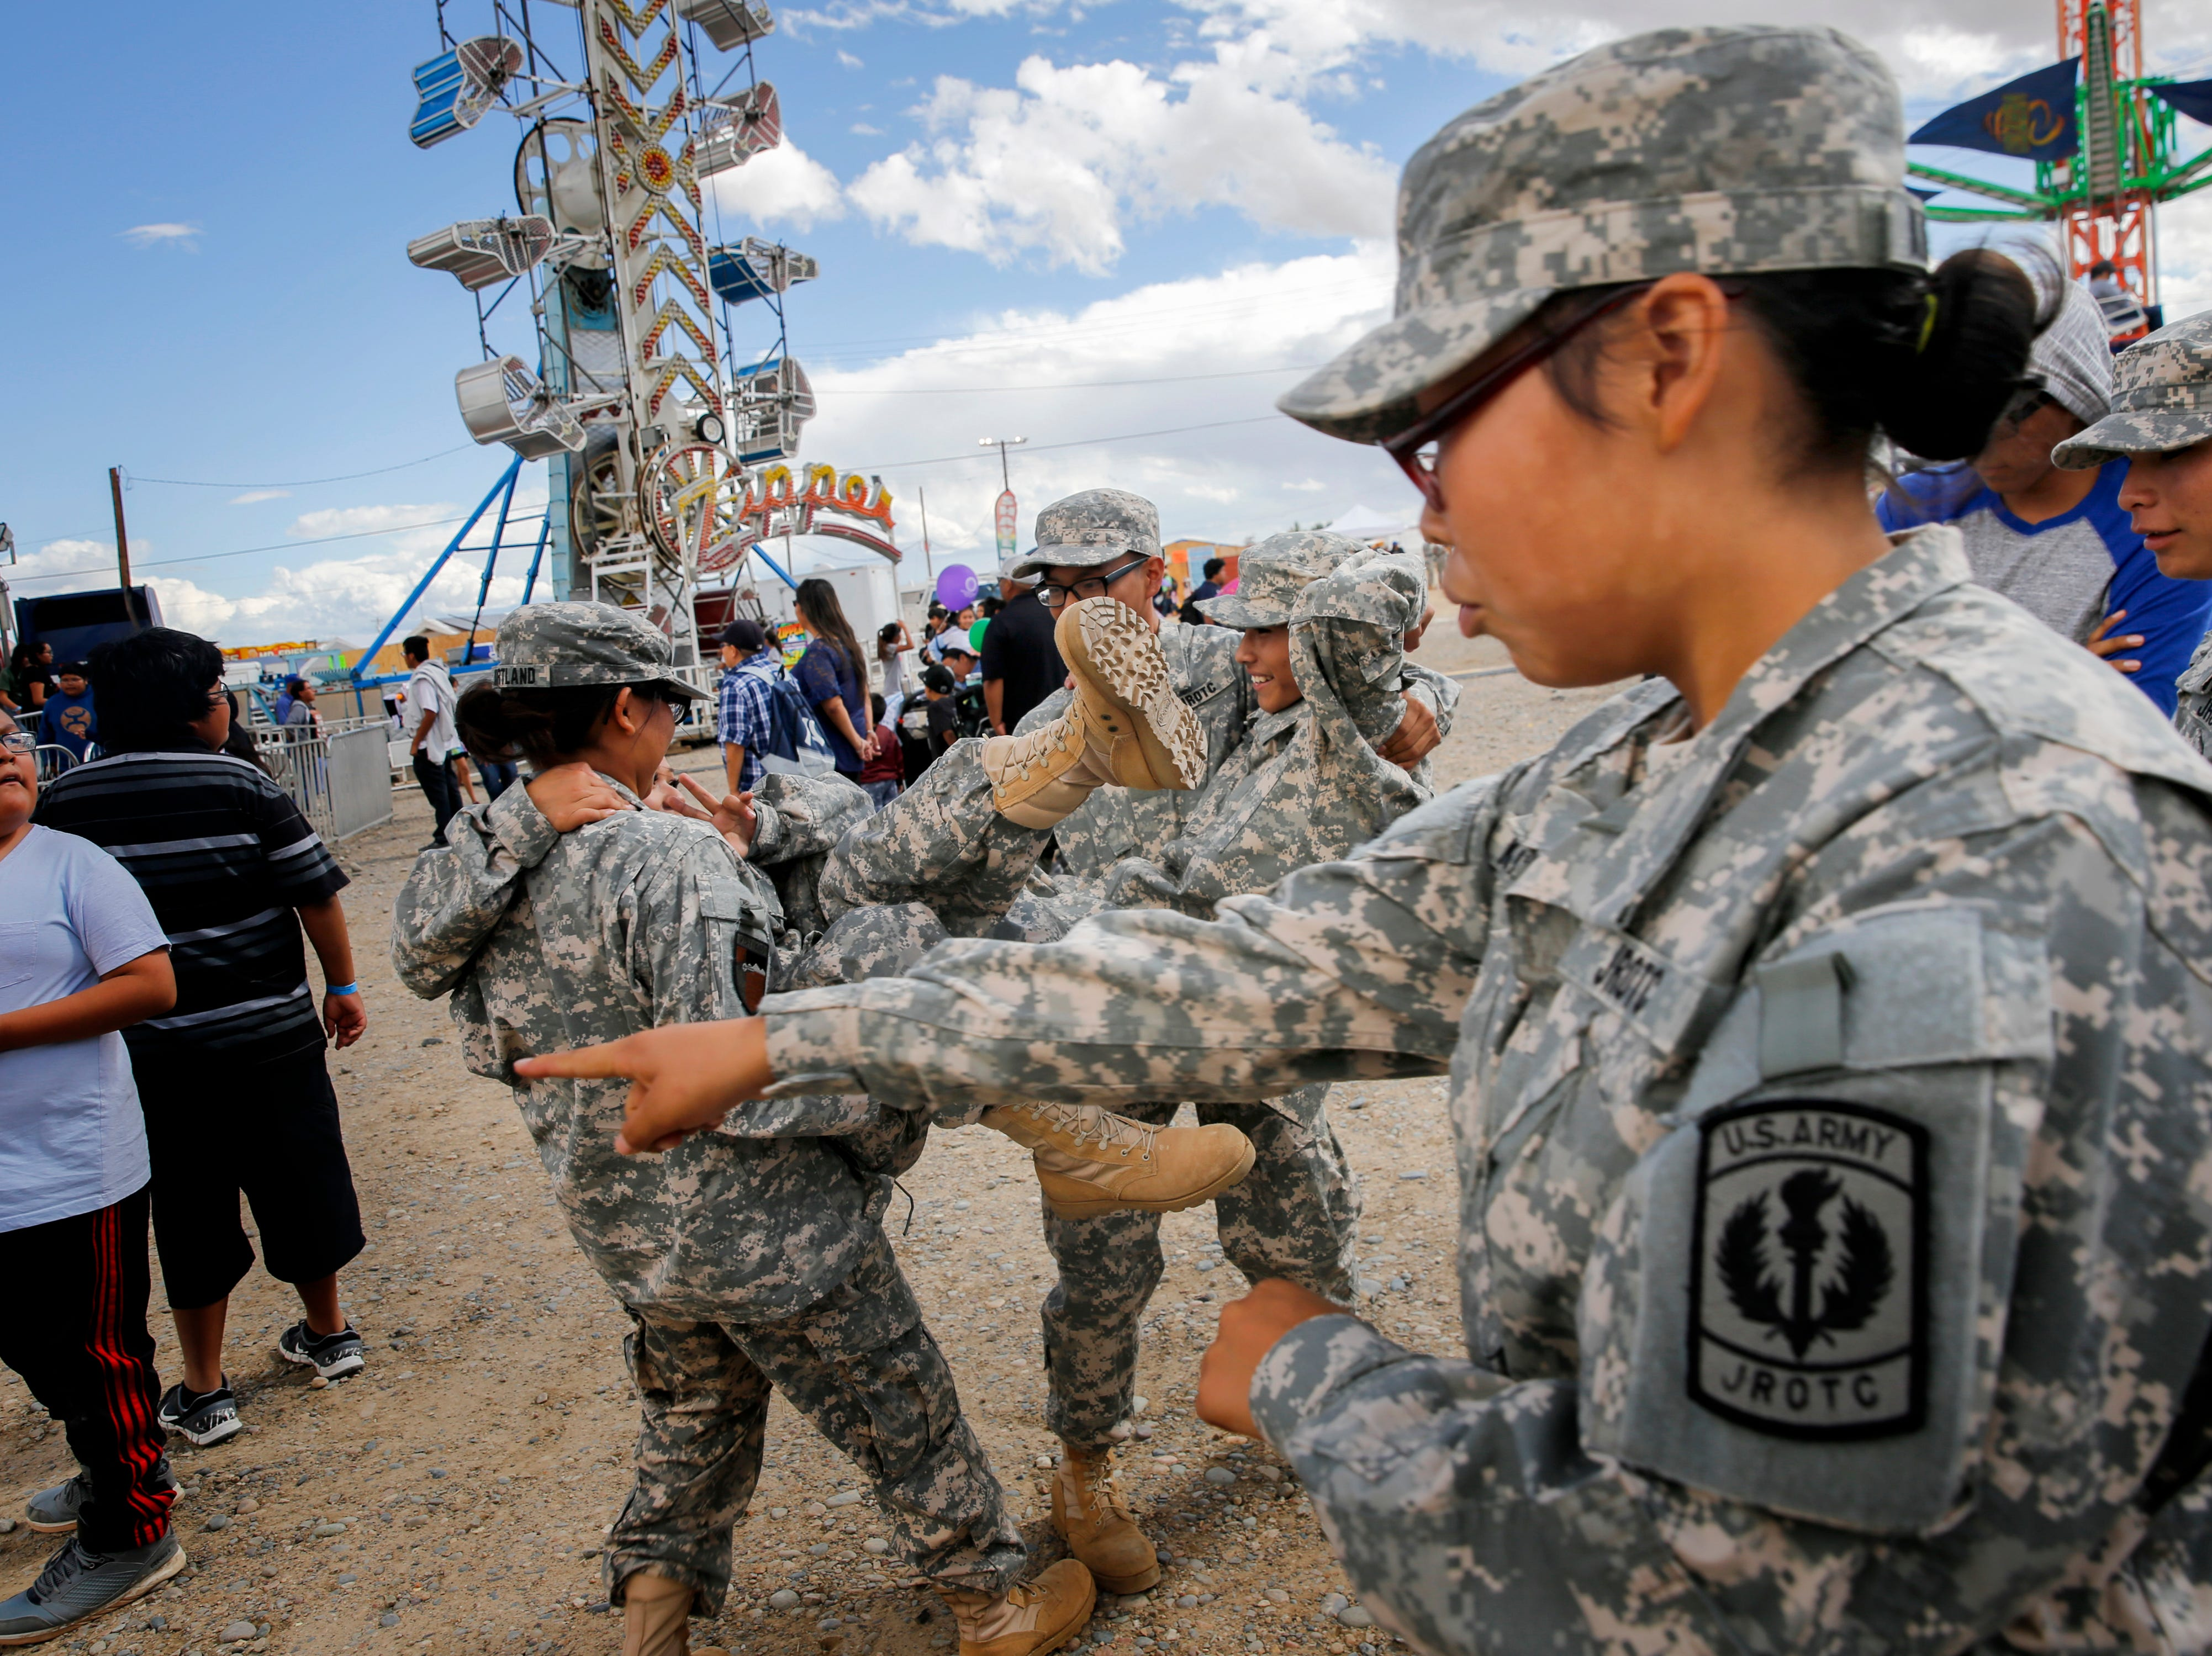 Members of the Kirtland Central High School JROTC members enjoy a day at the Northern Navajo Nation Fair, Thursday, Oct. 4, 2018 at the Northern Navajo Nation Fairgrounds in Shiprock.